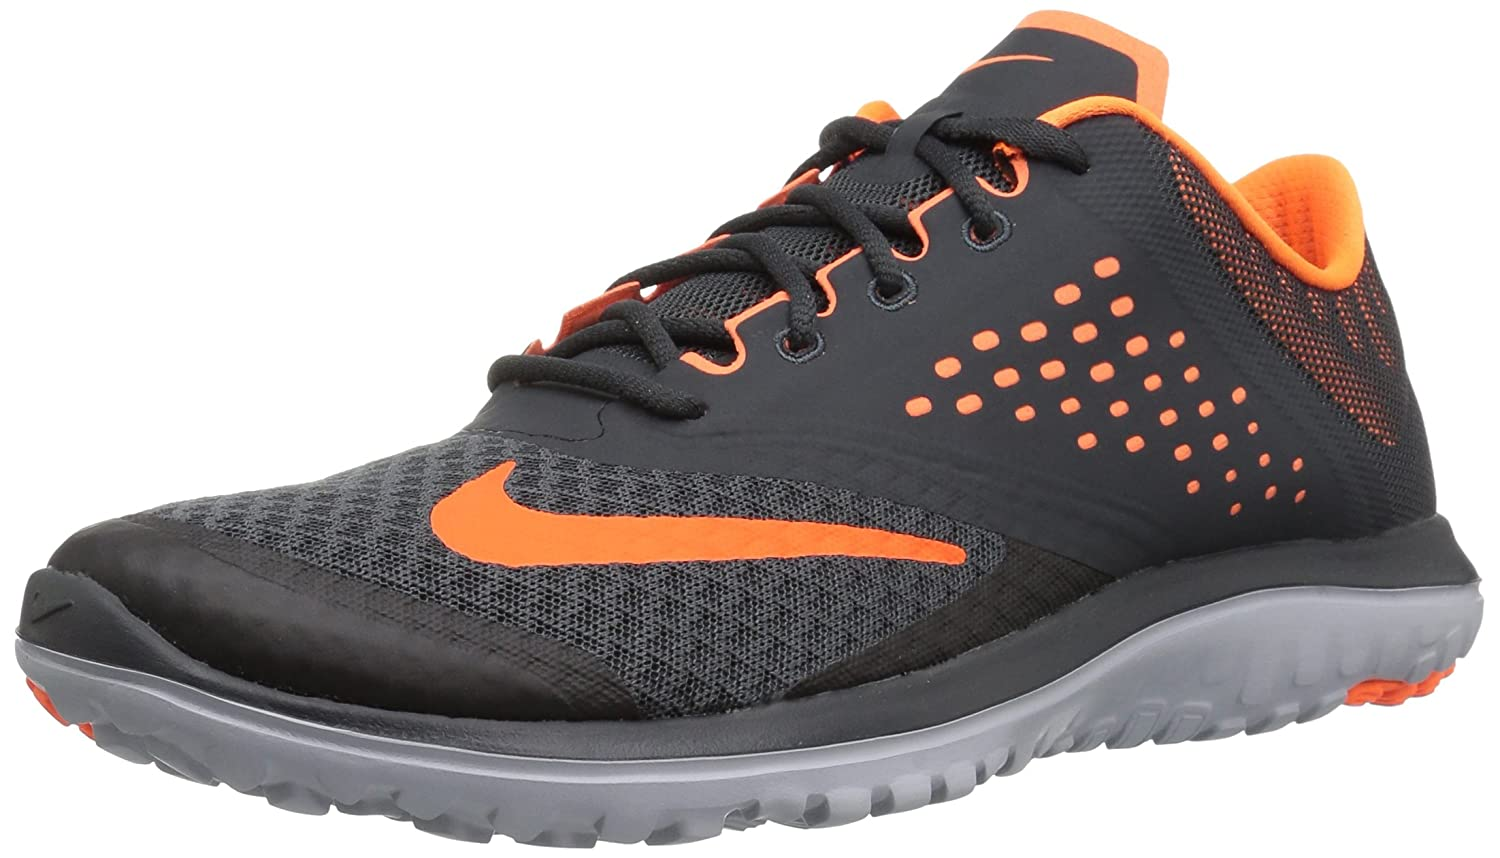 competitive price 10c41 9b301 Nike Men s FS Lite 2 Running Shoe, Anthracite Total Orange Wolf Grey, 12  D(M) US  Buy Online at Low Prices in India - Amazon.in